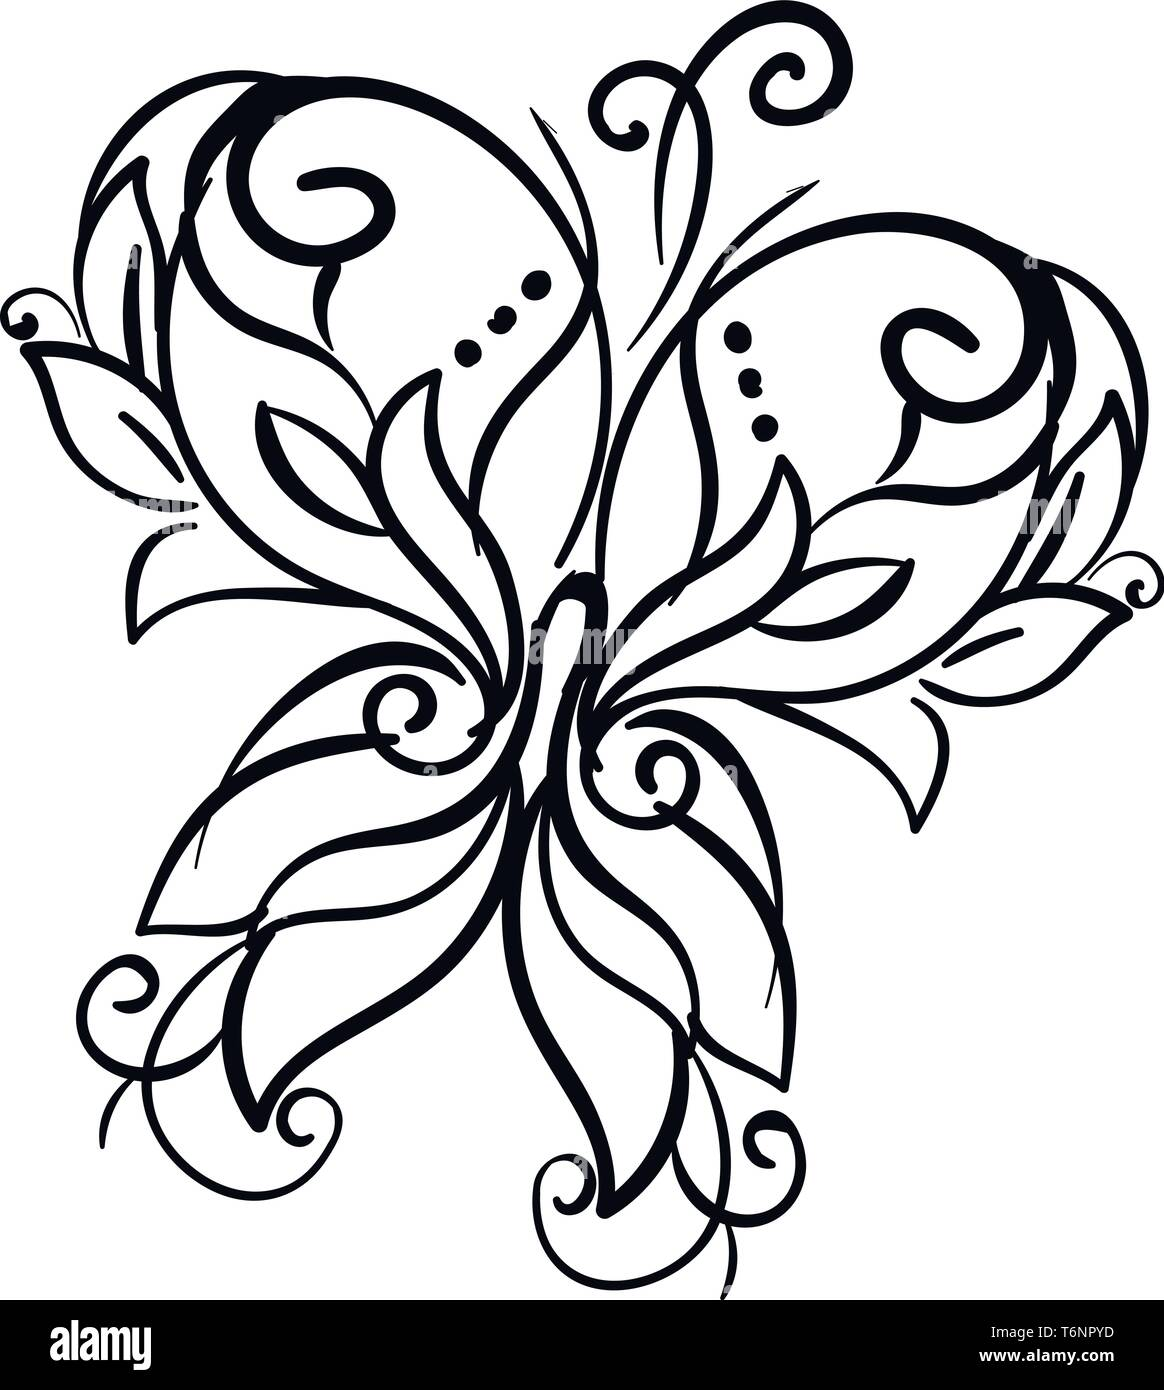 Line art of a décor butterfly with microscopic scales of various patterns covering its wings  vector  color drawing or illustration - Stock Image